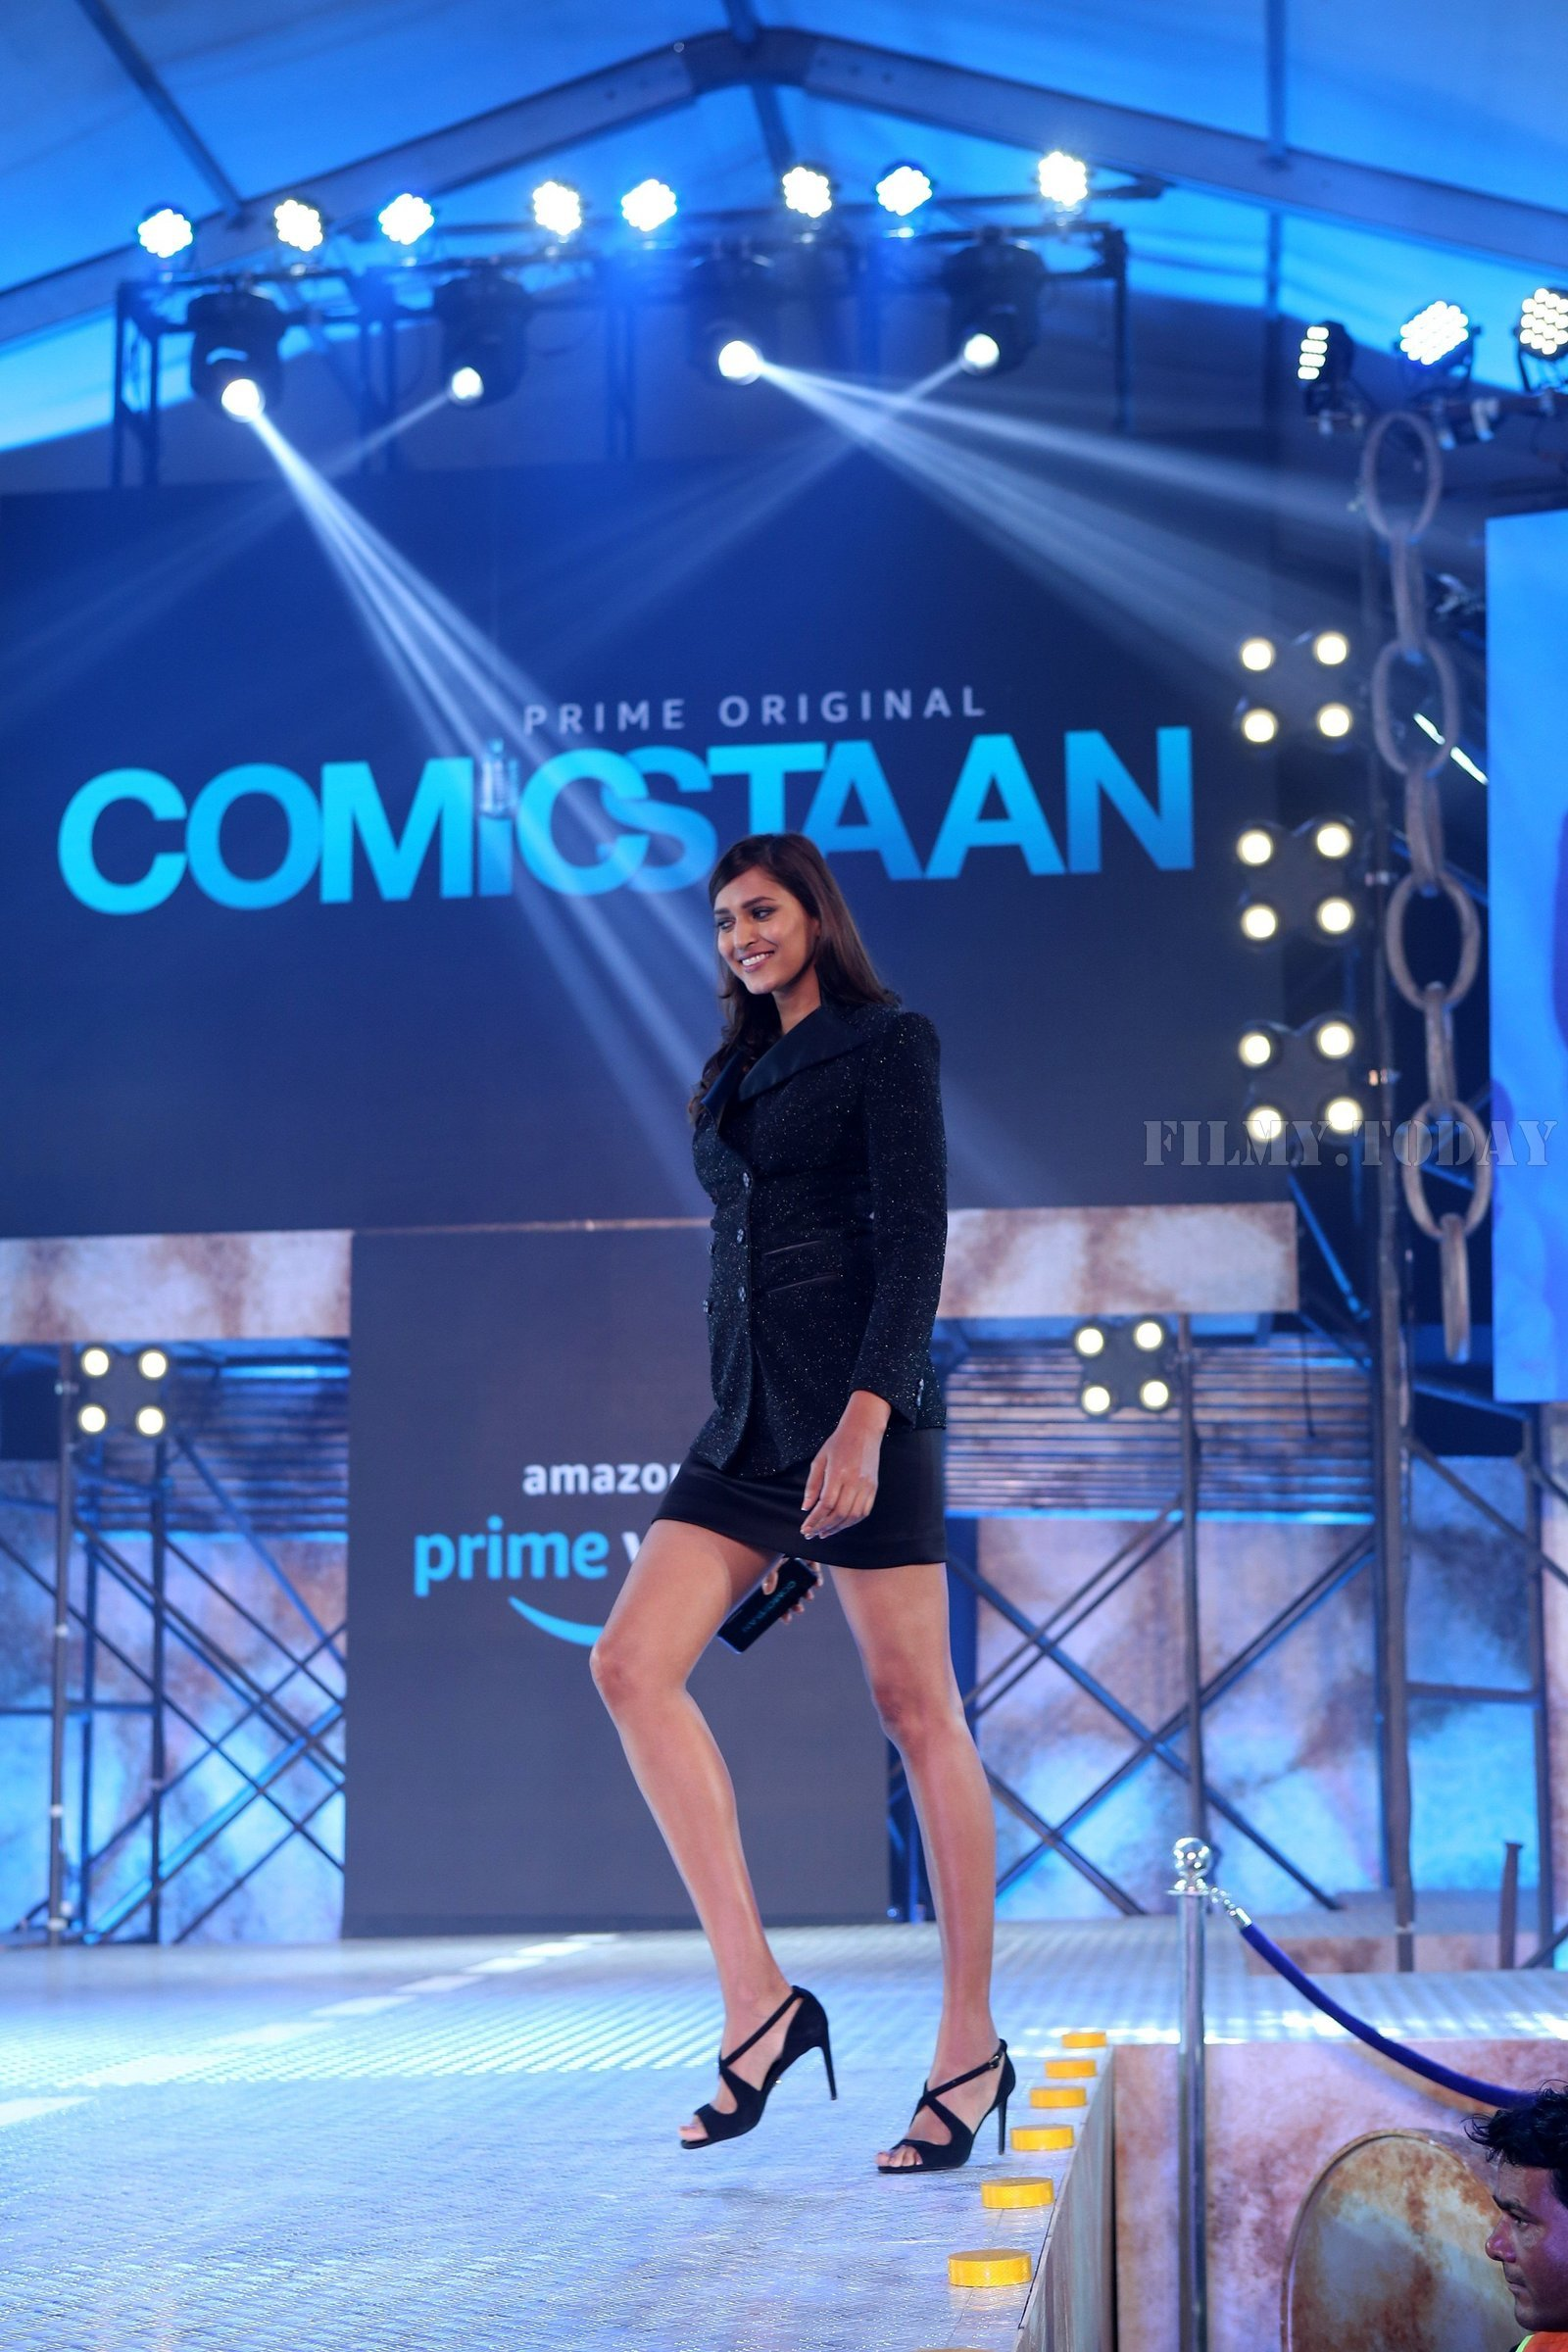 Photos: Akshay Kumar makes his digital debut with Amazon Prime Video | Picture 1632005